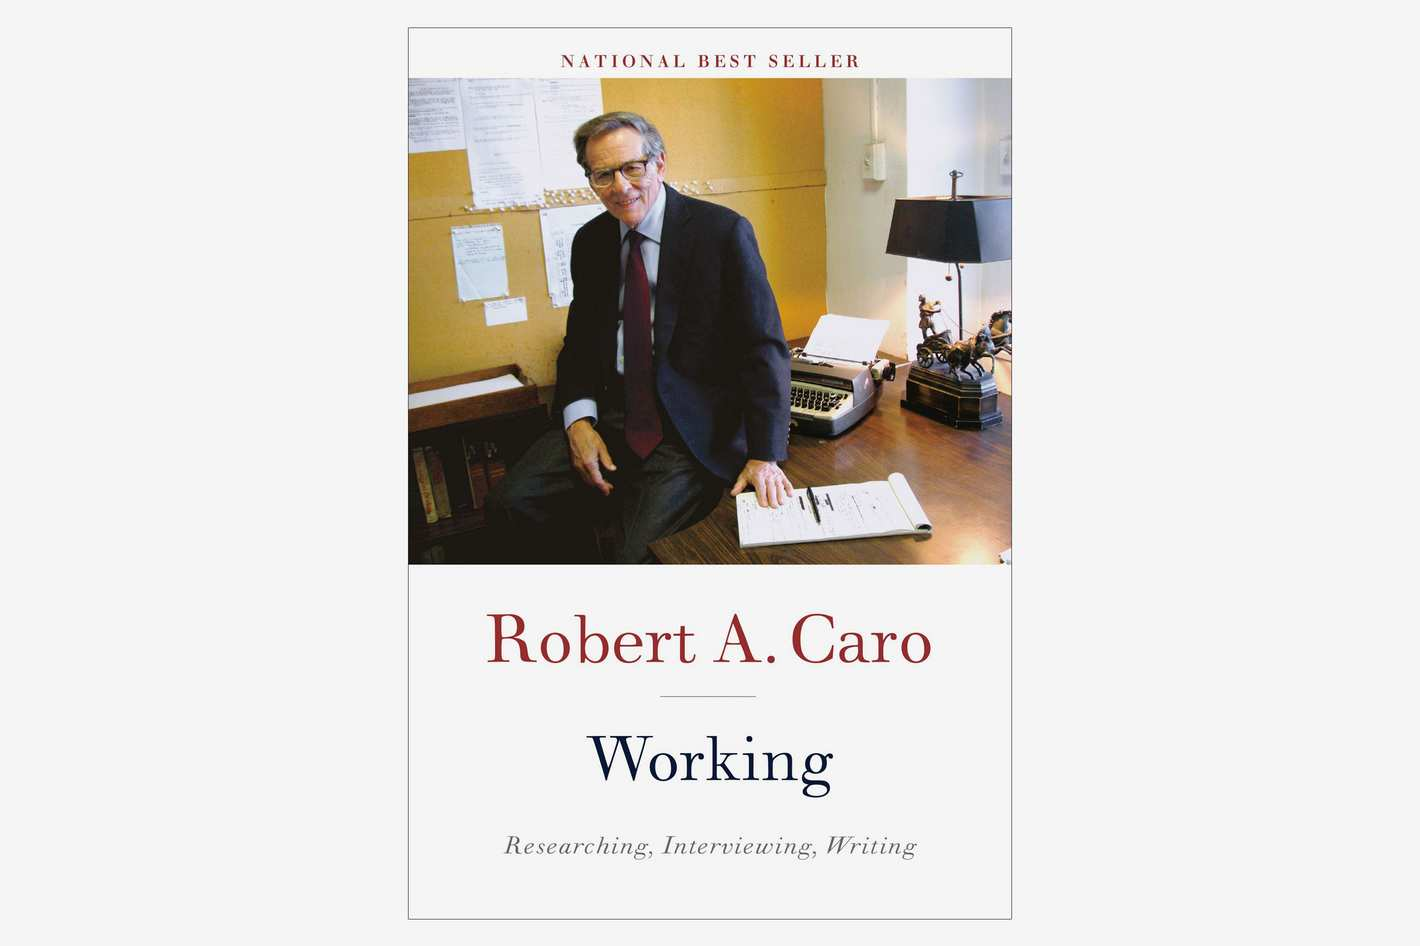 Working by Robert A. Caro, Audiobook